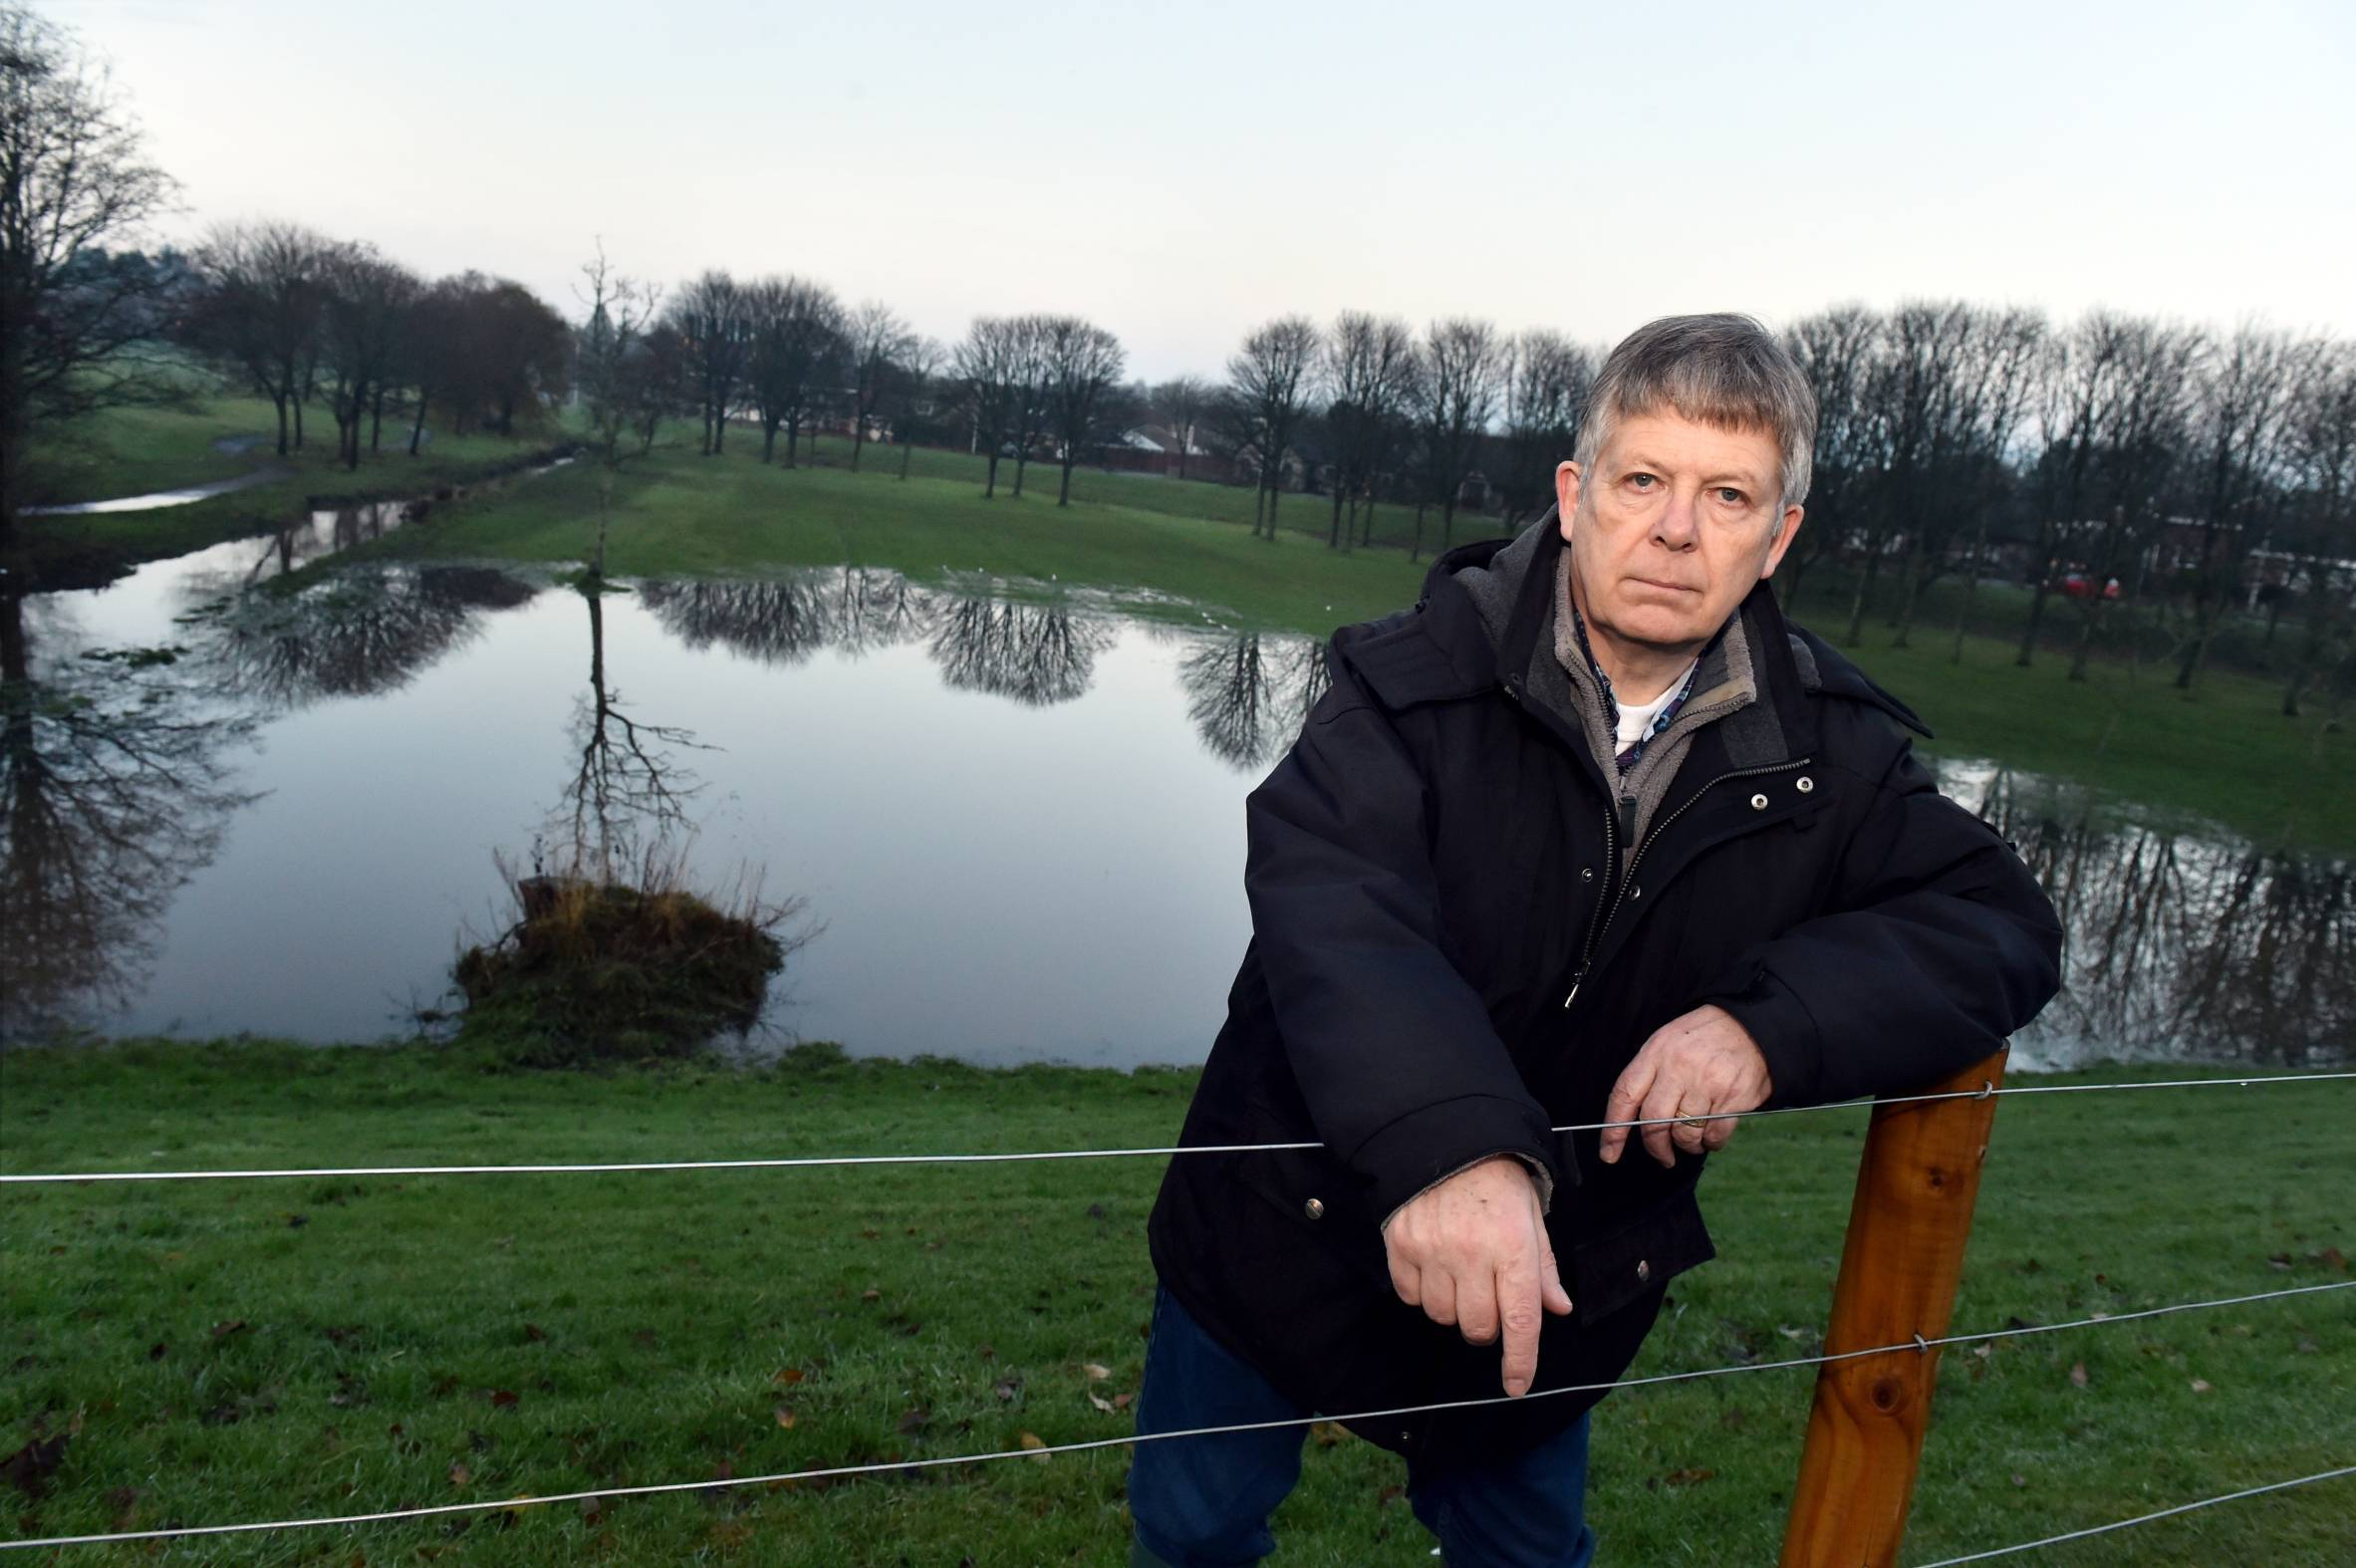 Craigiebuckler and Seafield Community Council's William Sell at the site of the flooding on King's Gate